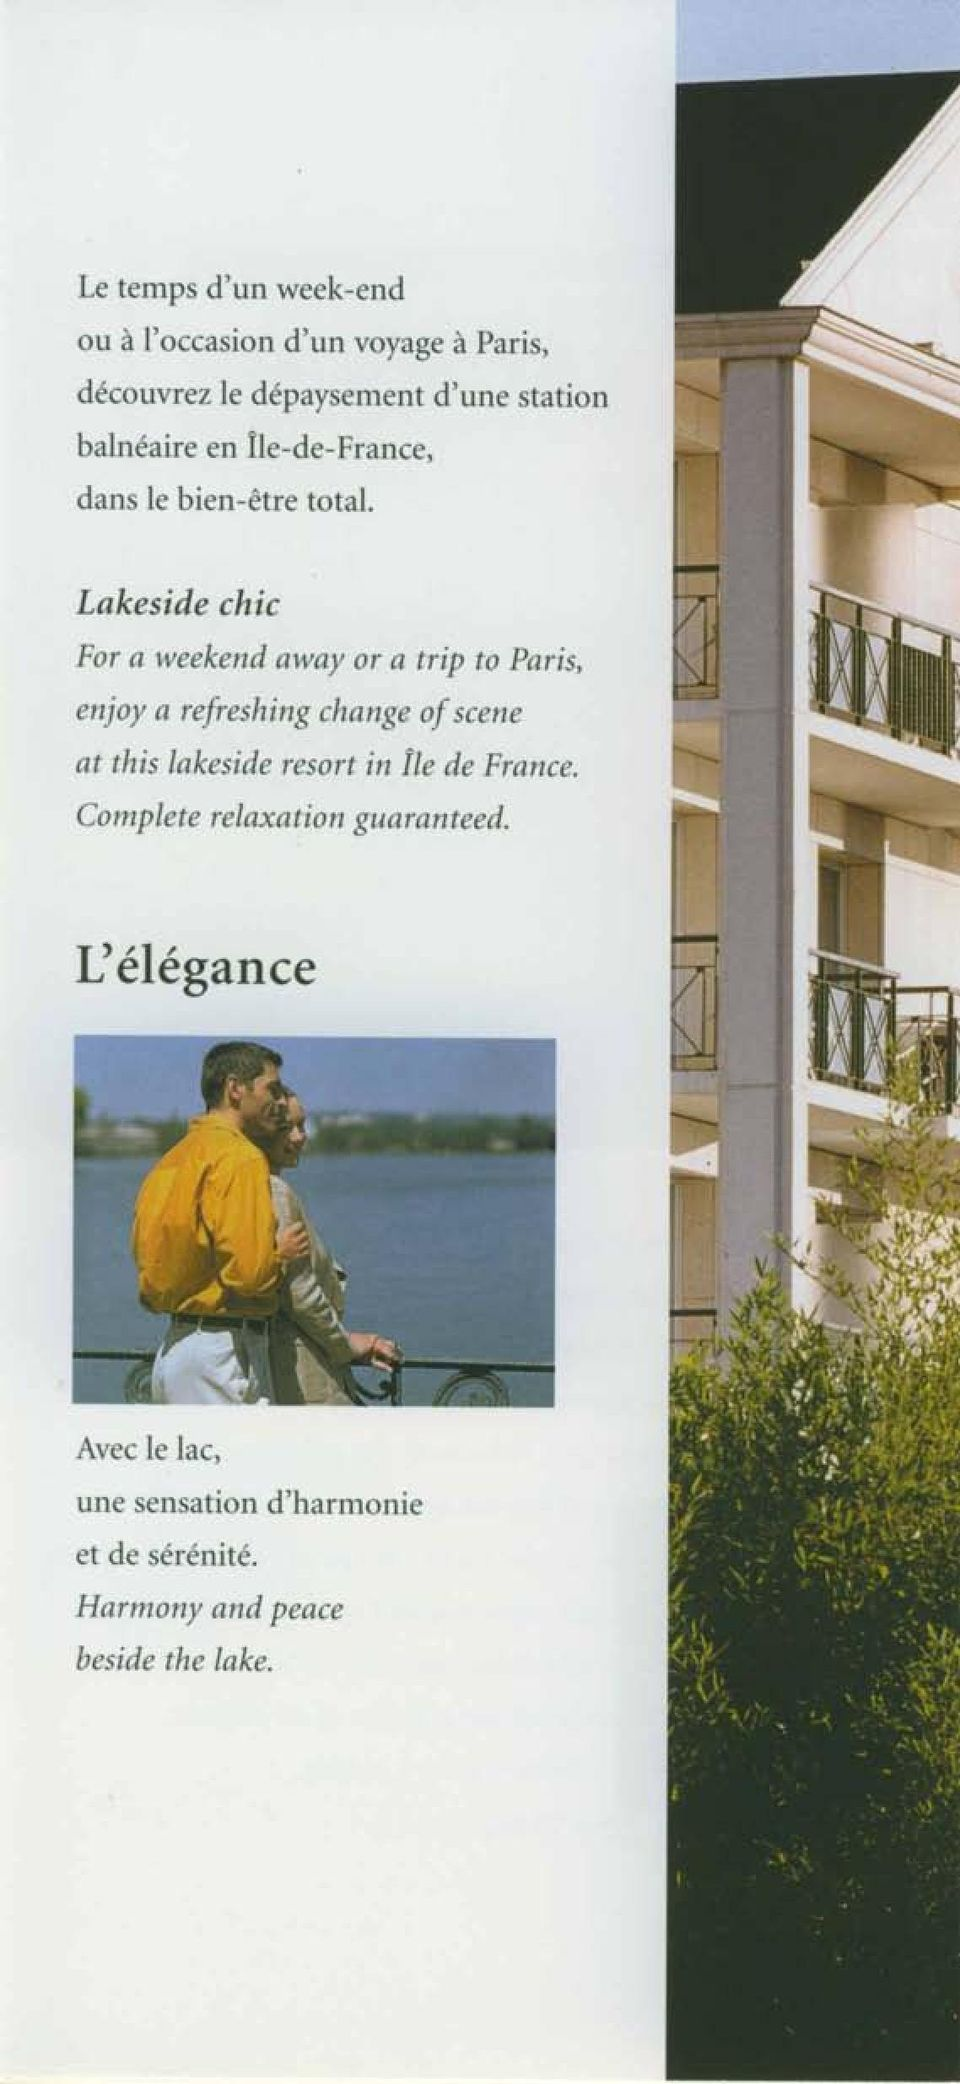 Lakeside chic For a weekend away or a trip to Paris, enjoy a refreshing change of scene at this